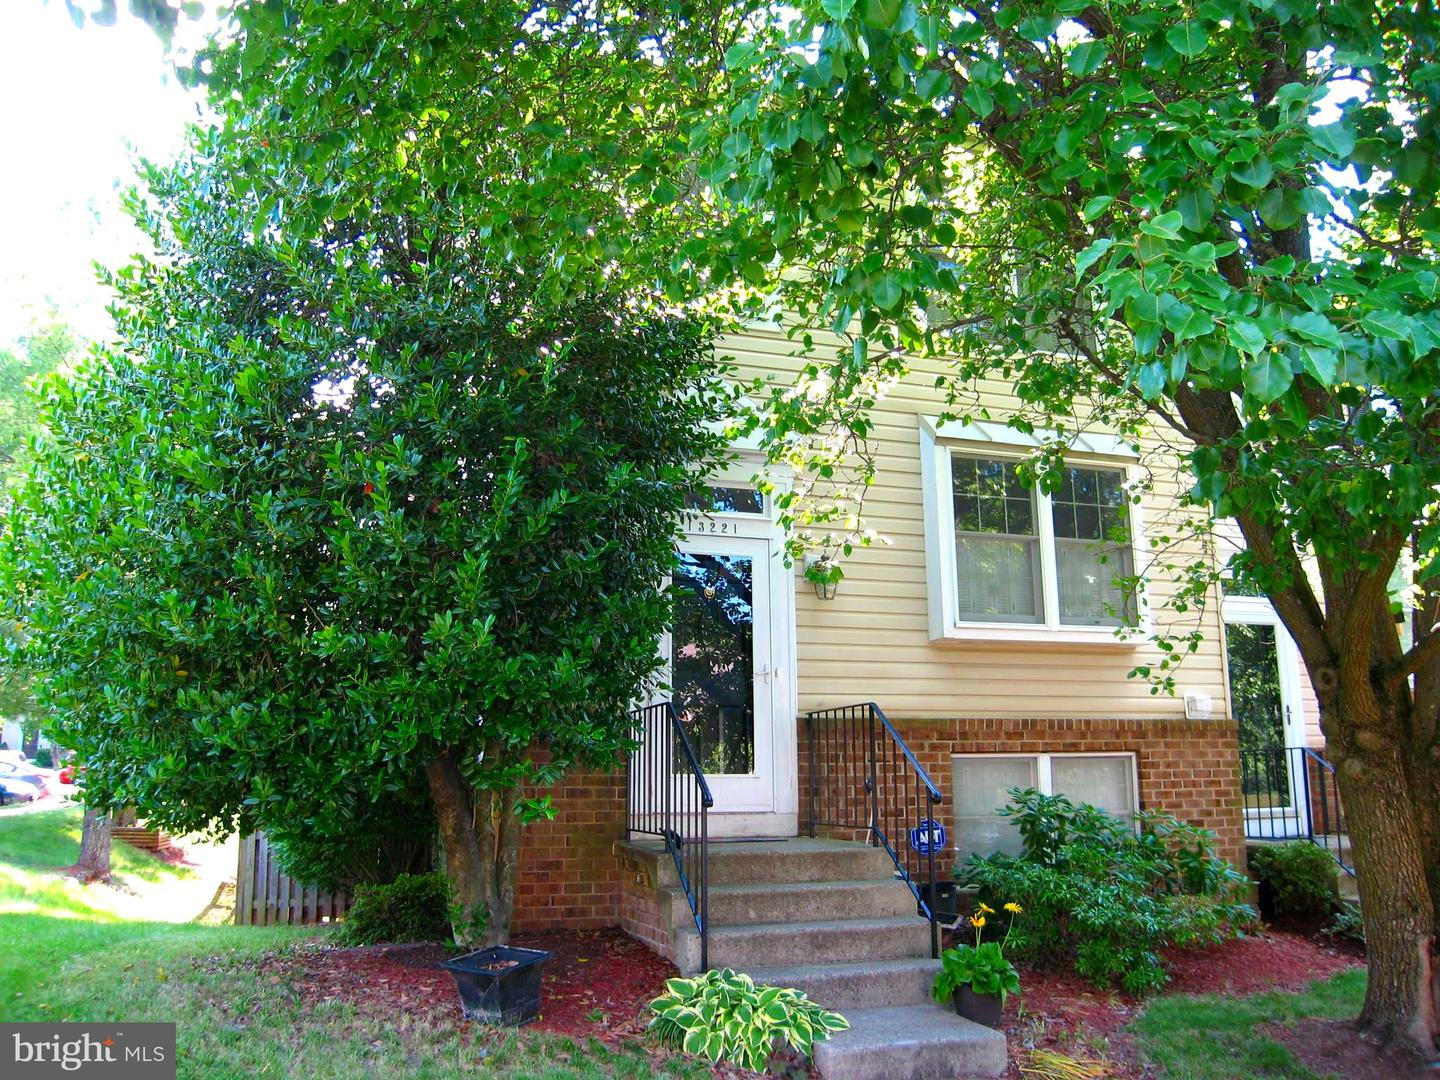 20 Best Apartments For Rent In Fairfax, VA (with pictures)!